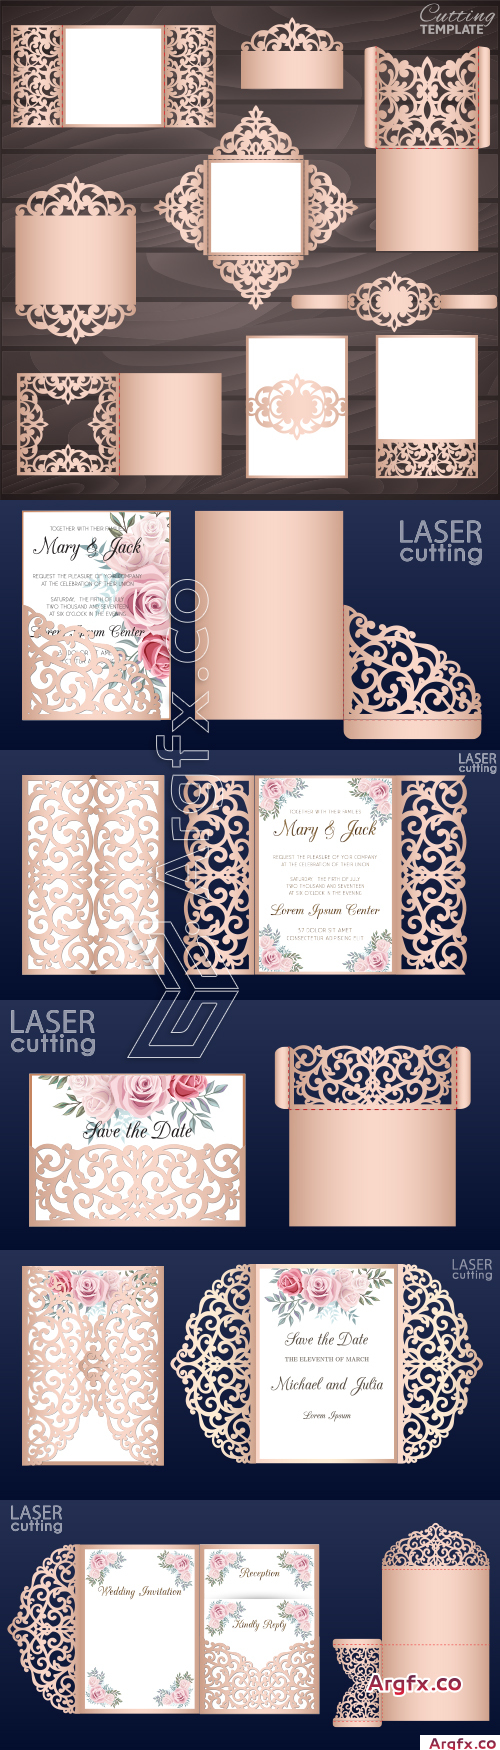 Wedding collection vector cards, invitation, envelopes